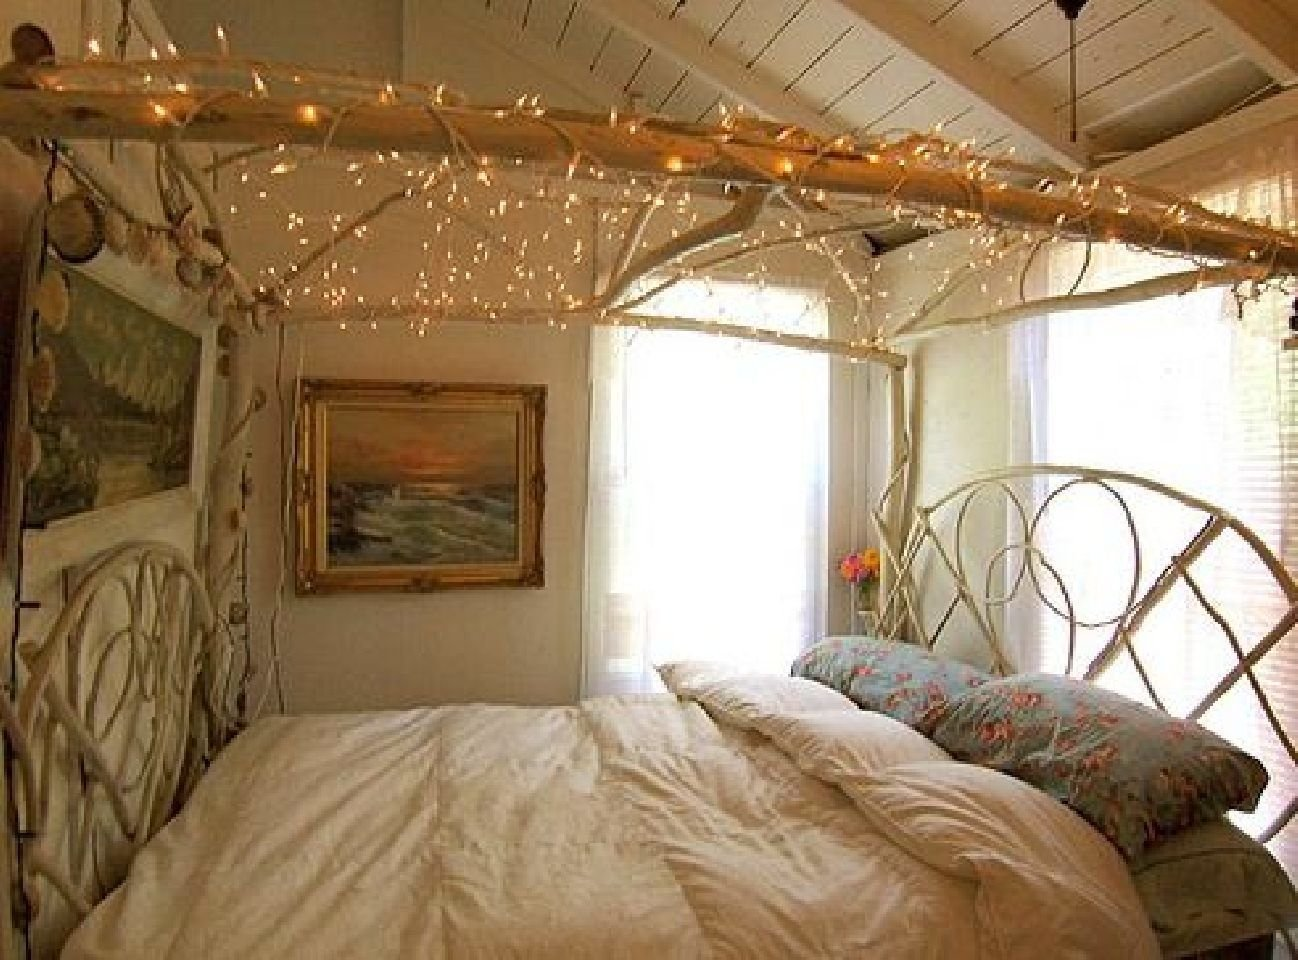 Best Diy Inspirations A Canopy Bed • Breakfast With Audrey With Pictures